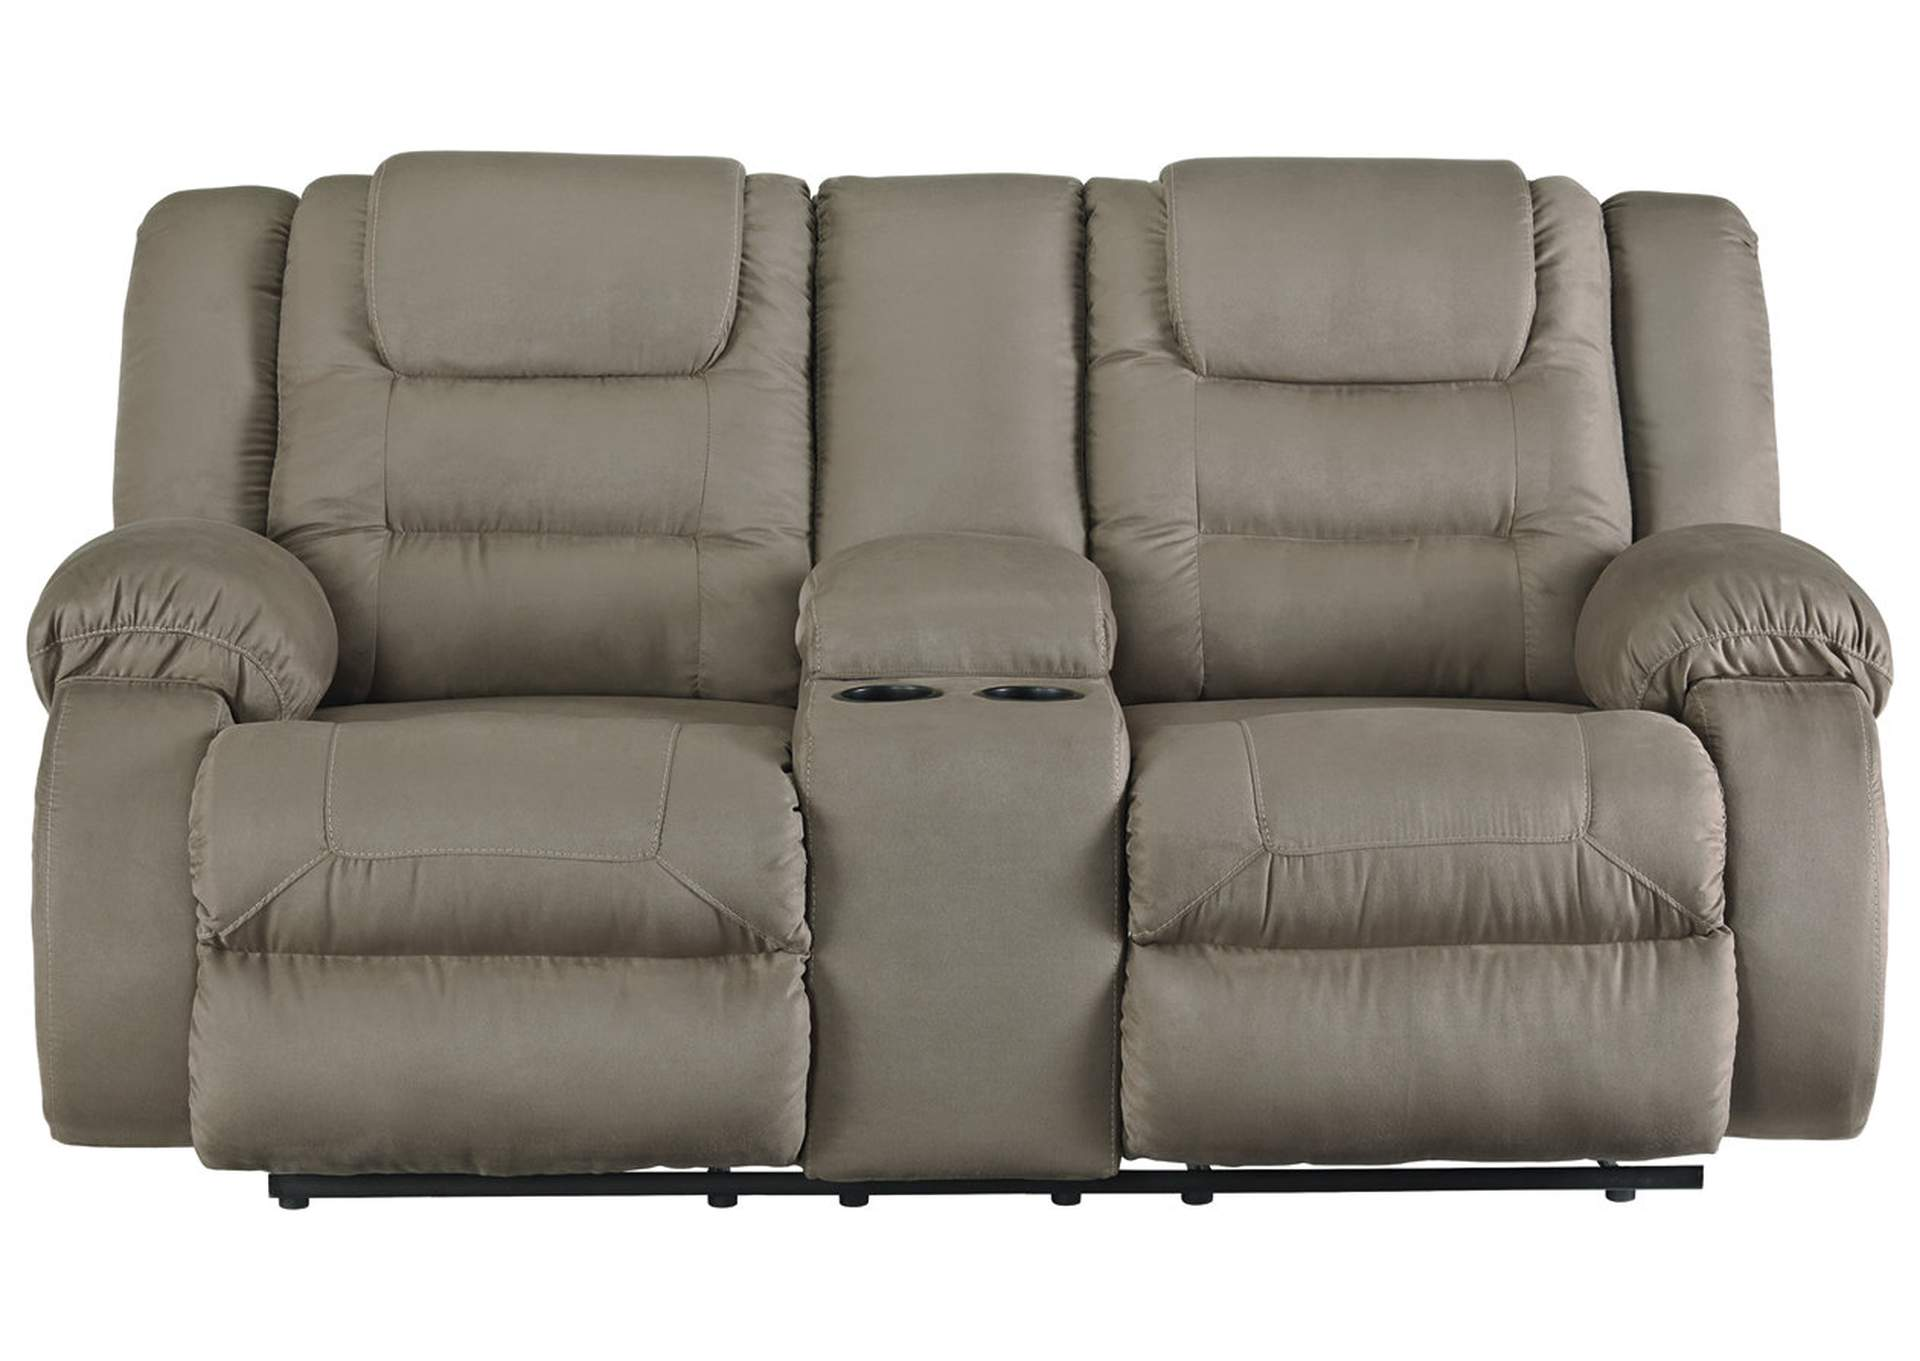 McCade Cobblestone Double Reclining Loveseat w/Console,Signature Design By Ashley